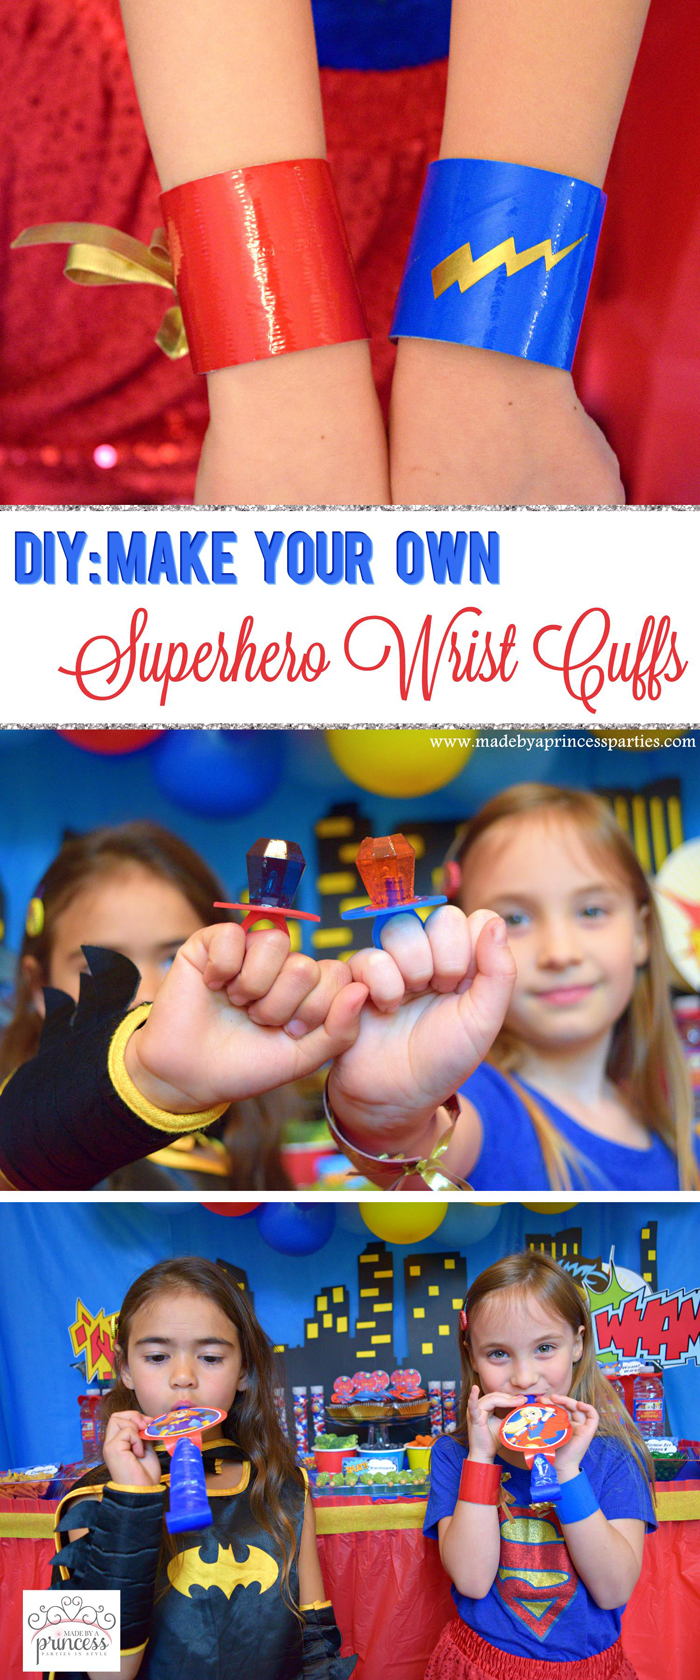 Party-Costume-Idea-How-to-Make-Superhero-Cuffs-pin-it